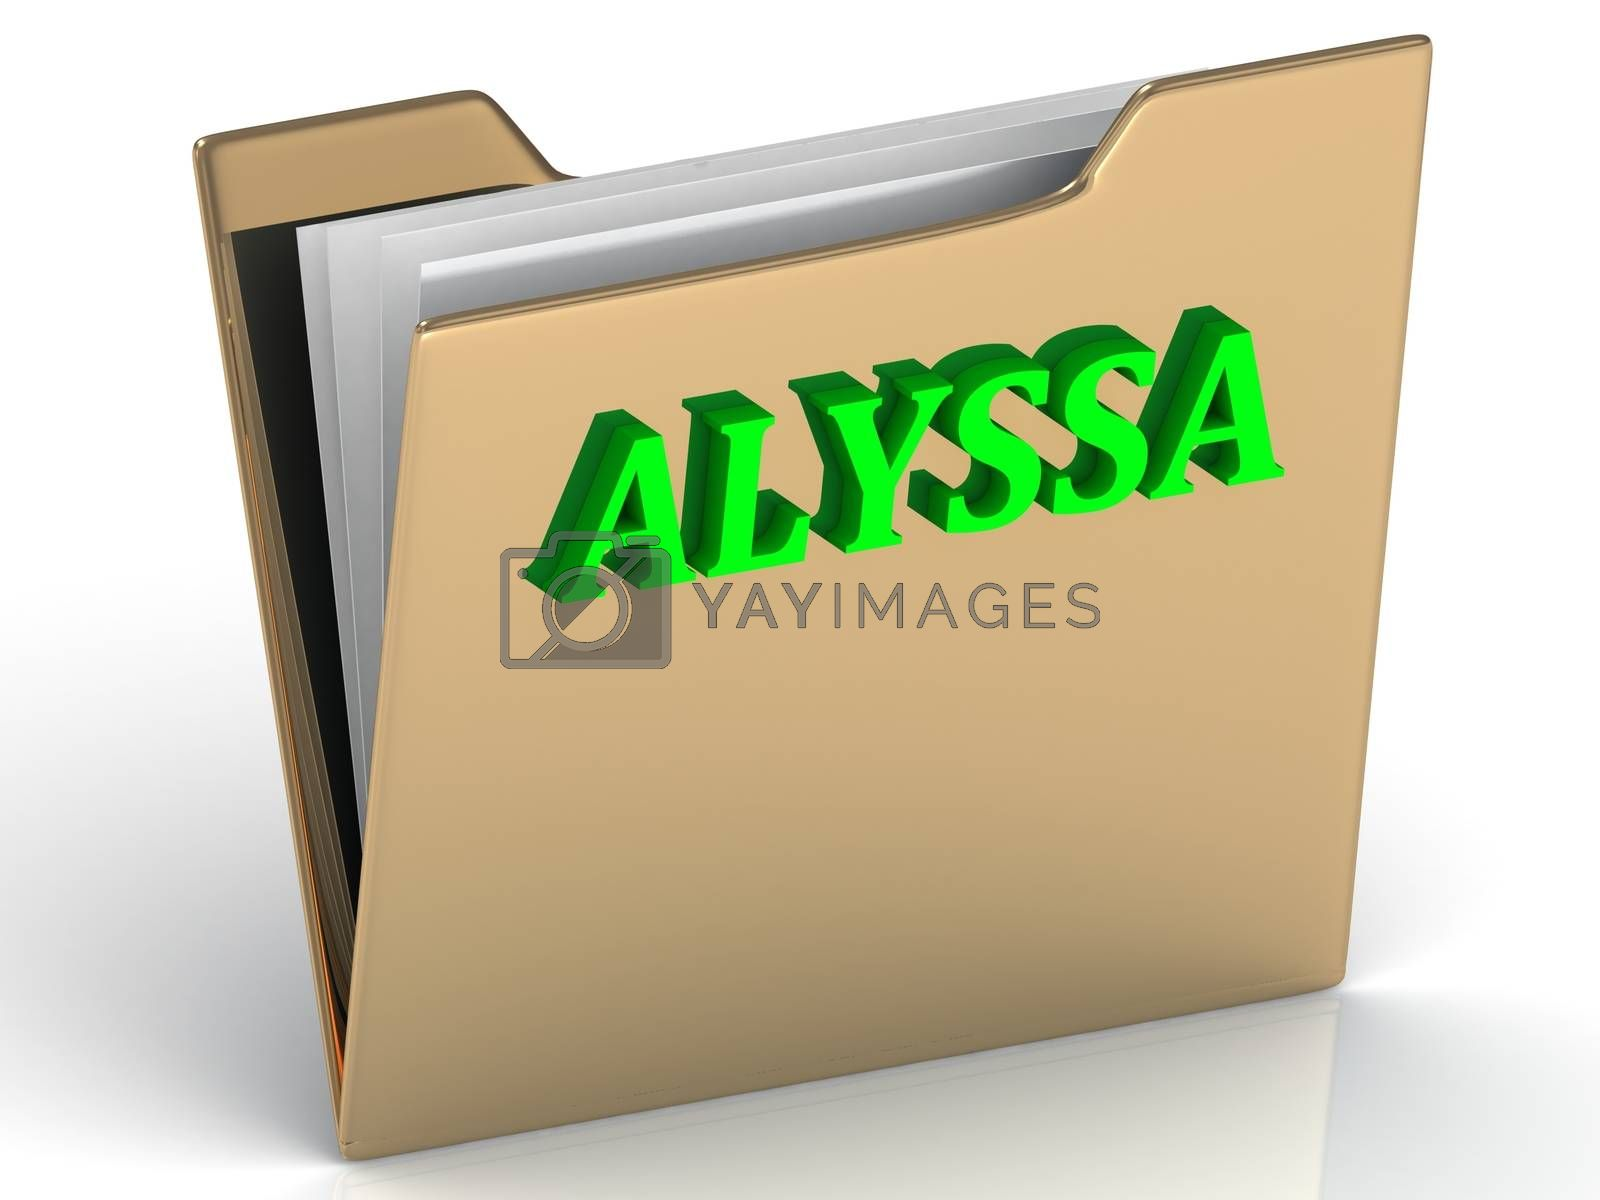 ALYSSA- bright green letters on gold paperwork folder on a white background